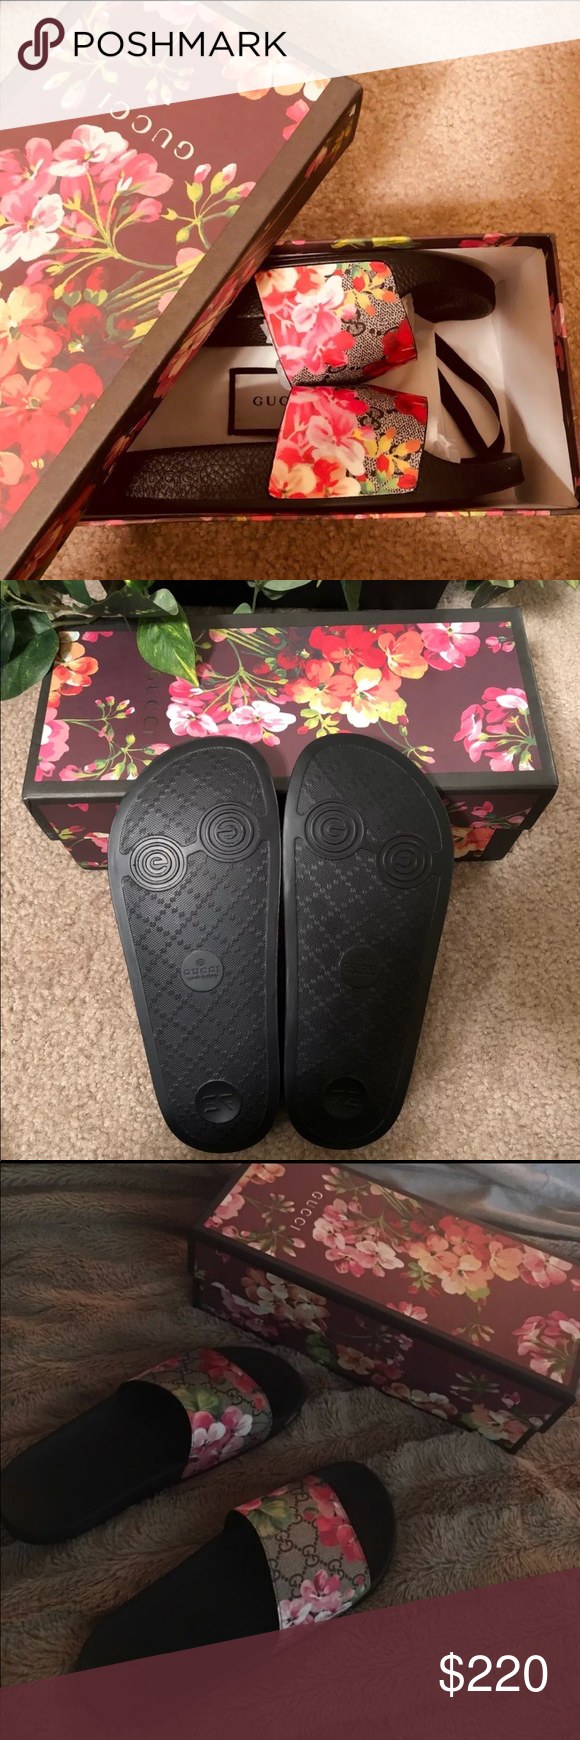 0704d1c49ee2e Gucci Bloom Flip flops Only contact when ready to purchase. I have many  sizes available Gucci Shoes Sandals